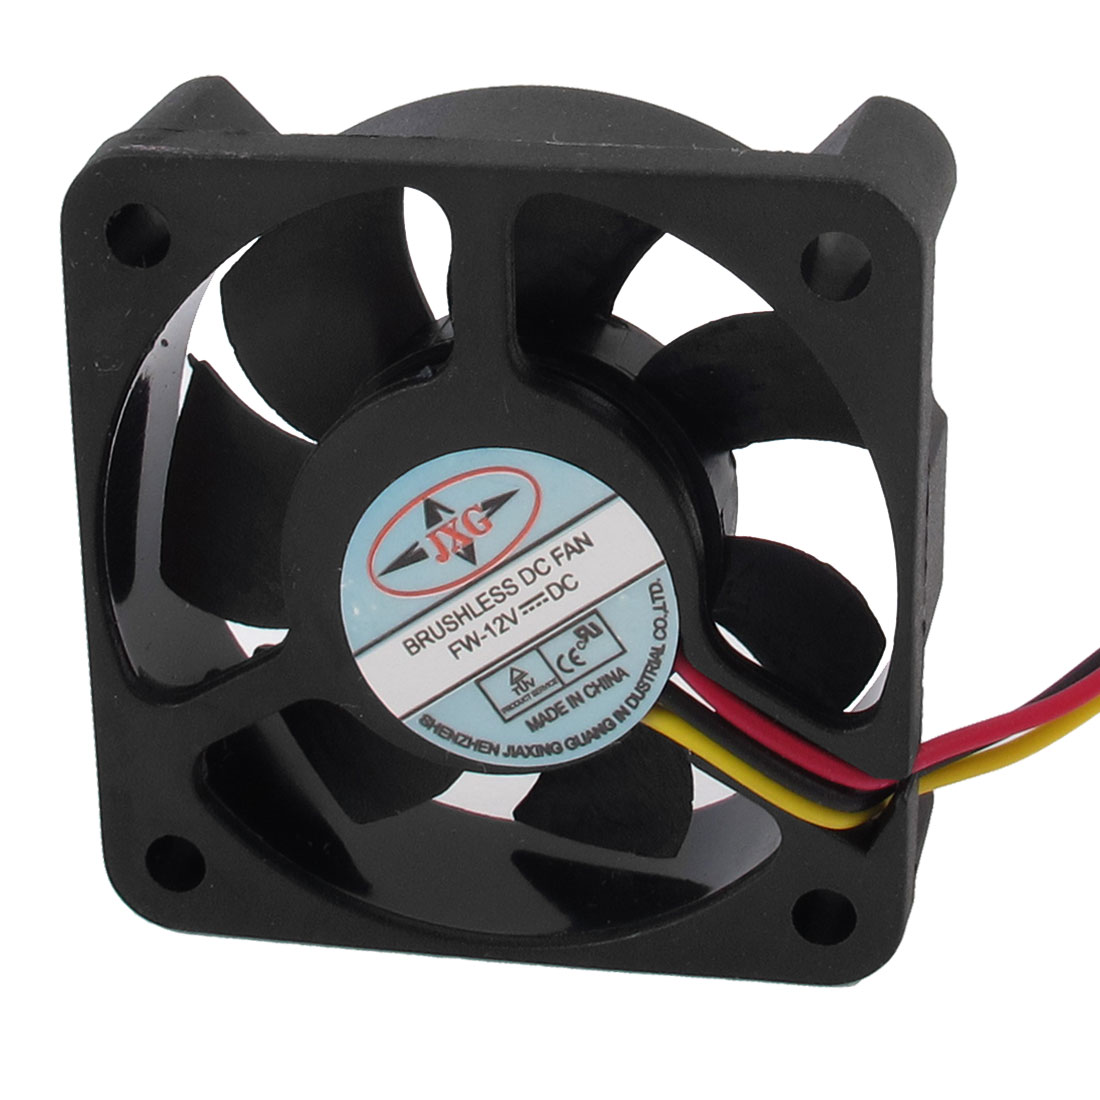 50mm x 10mm 12V DC Brushless Computer Cooling Fan